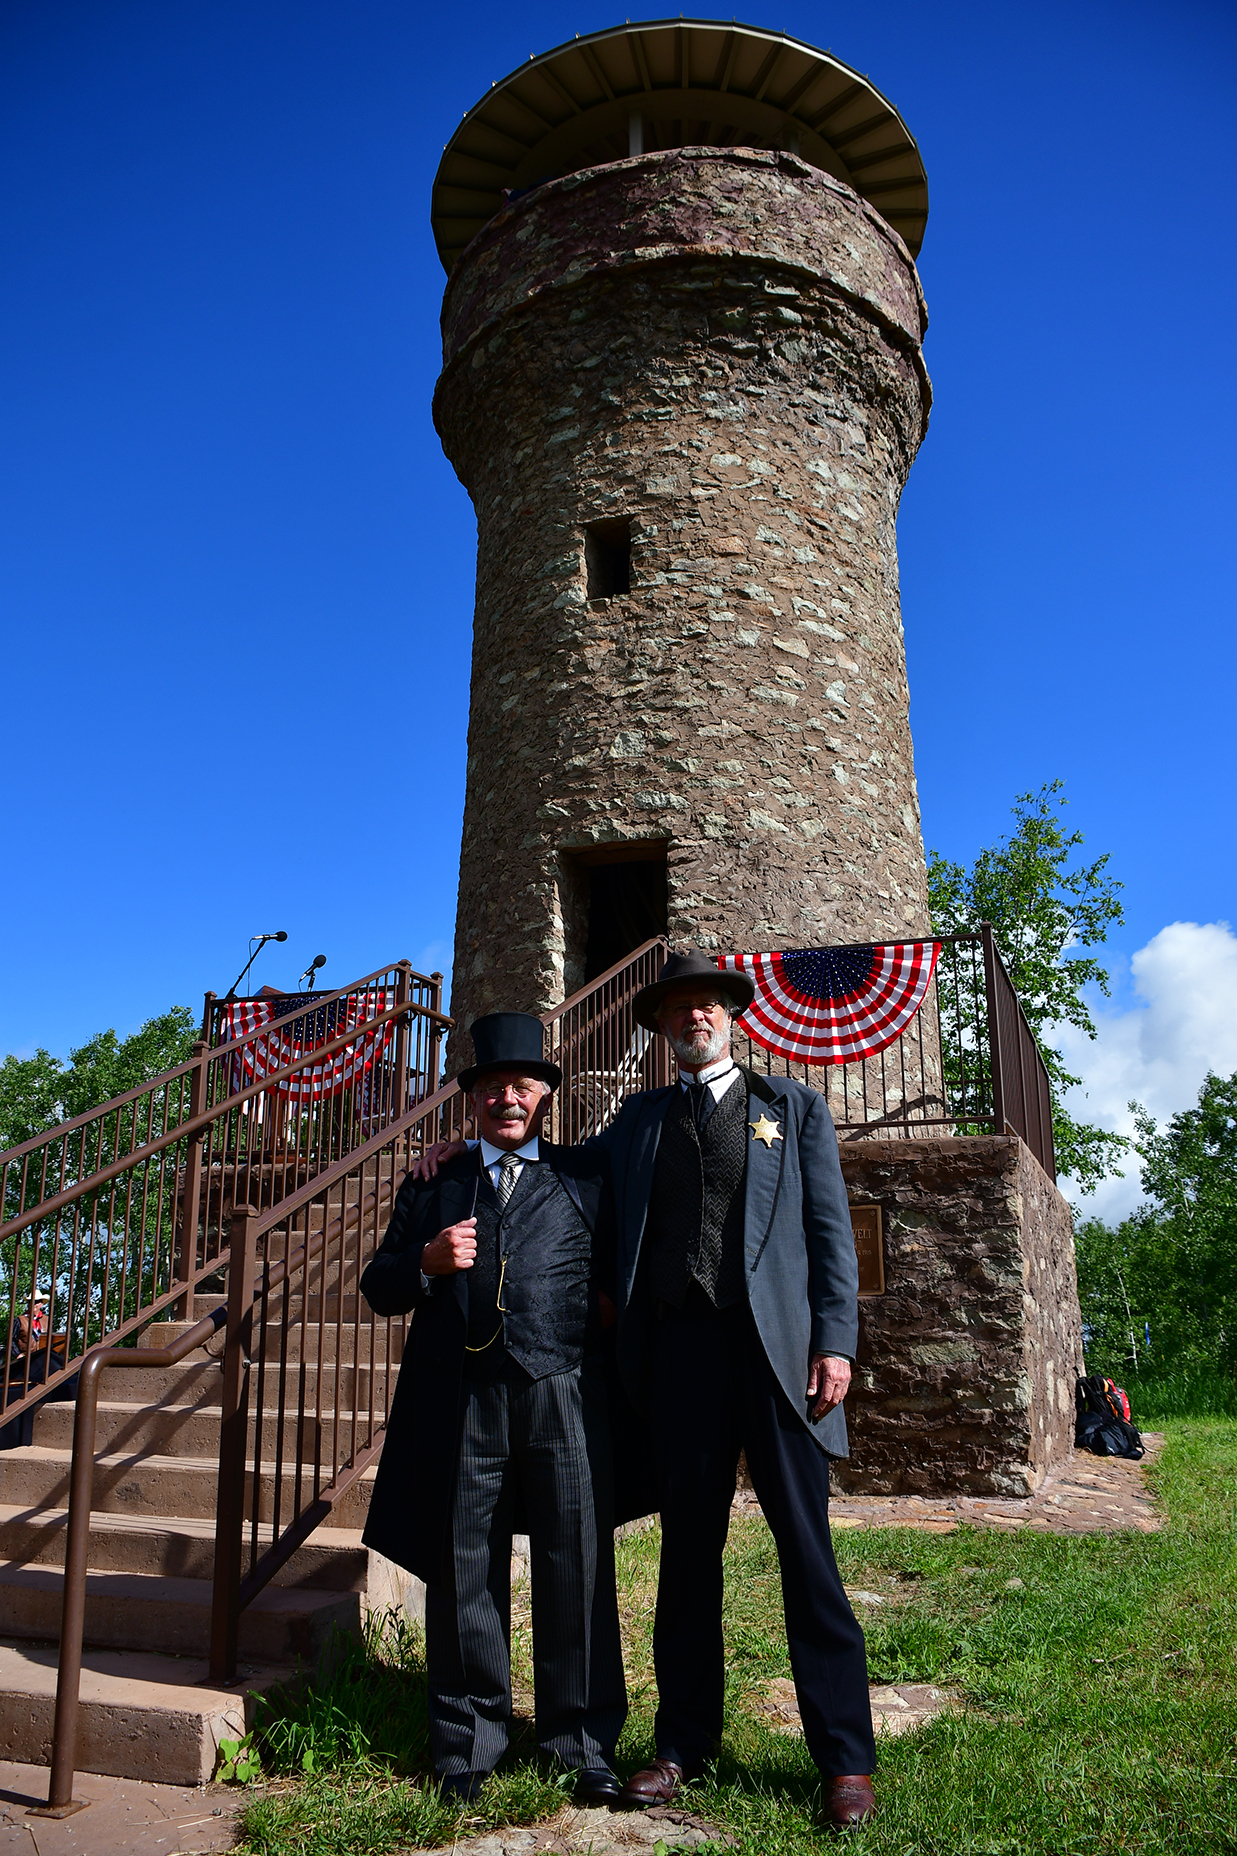 Image - FriendshipTower-reenactors.jpg